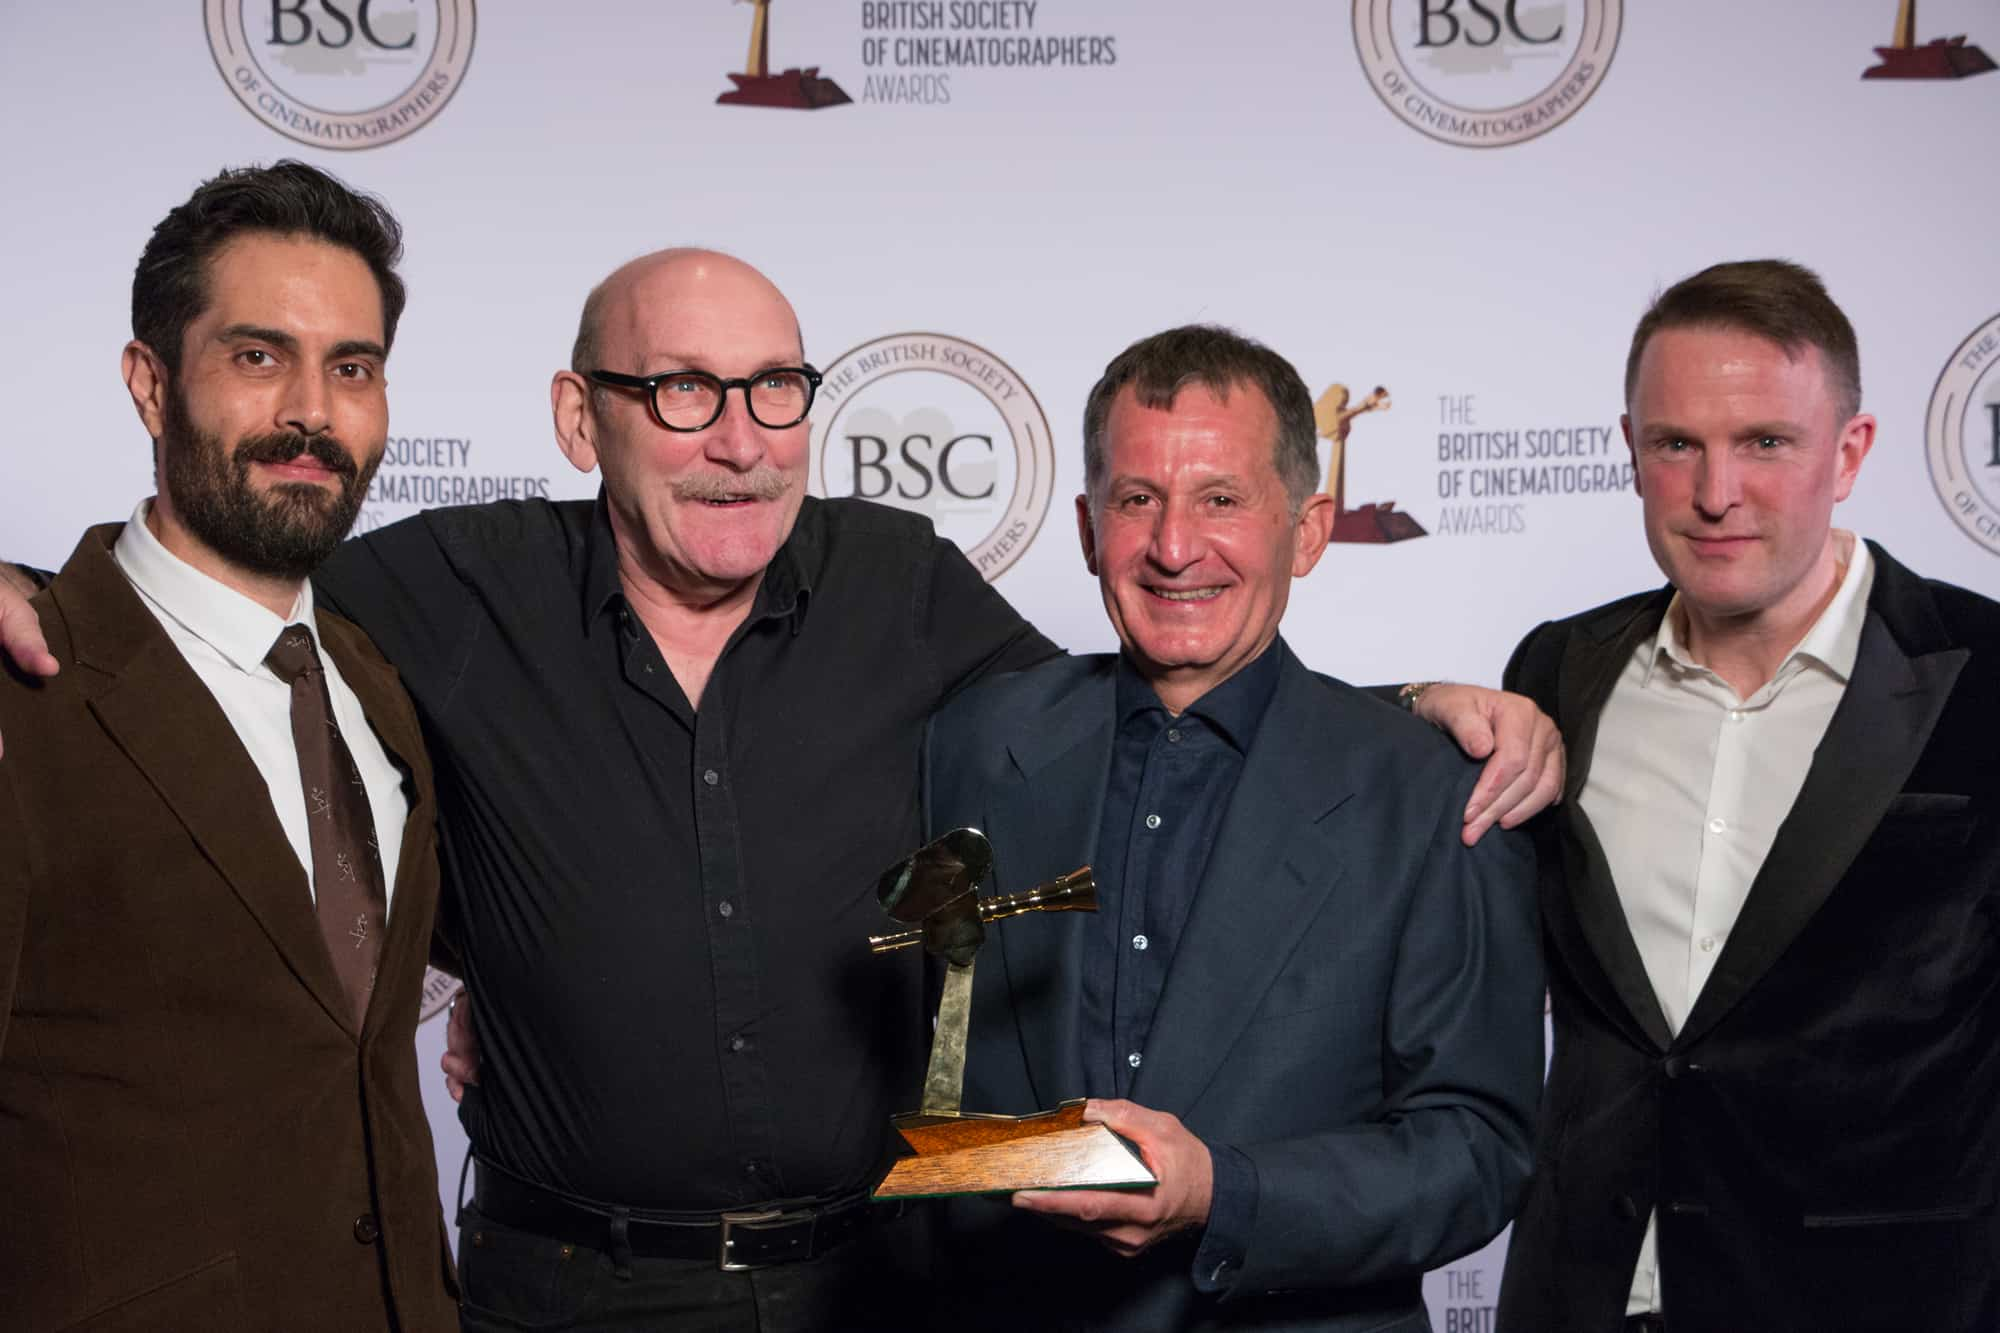 Collaborators from <em>1917</em> accept the Feature Film award on behalf of Roger Deakins - including camera operators Charlie Rizek (far left) and Peter Cavaciuti (second right), plus gaffer John 'Biggles' Higgins (second left)